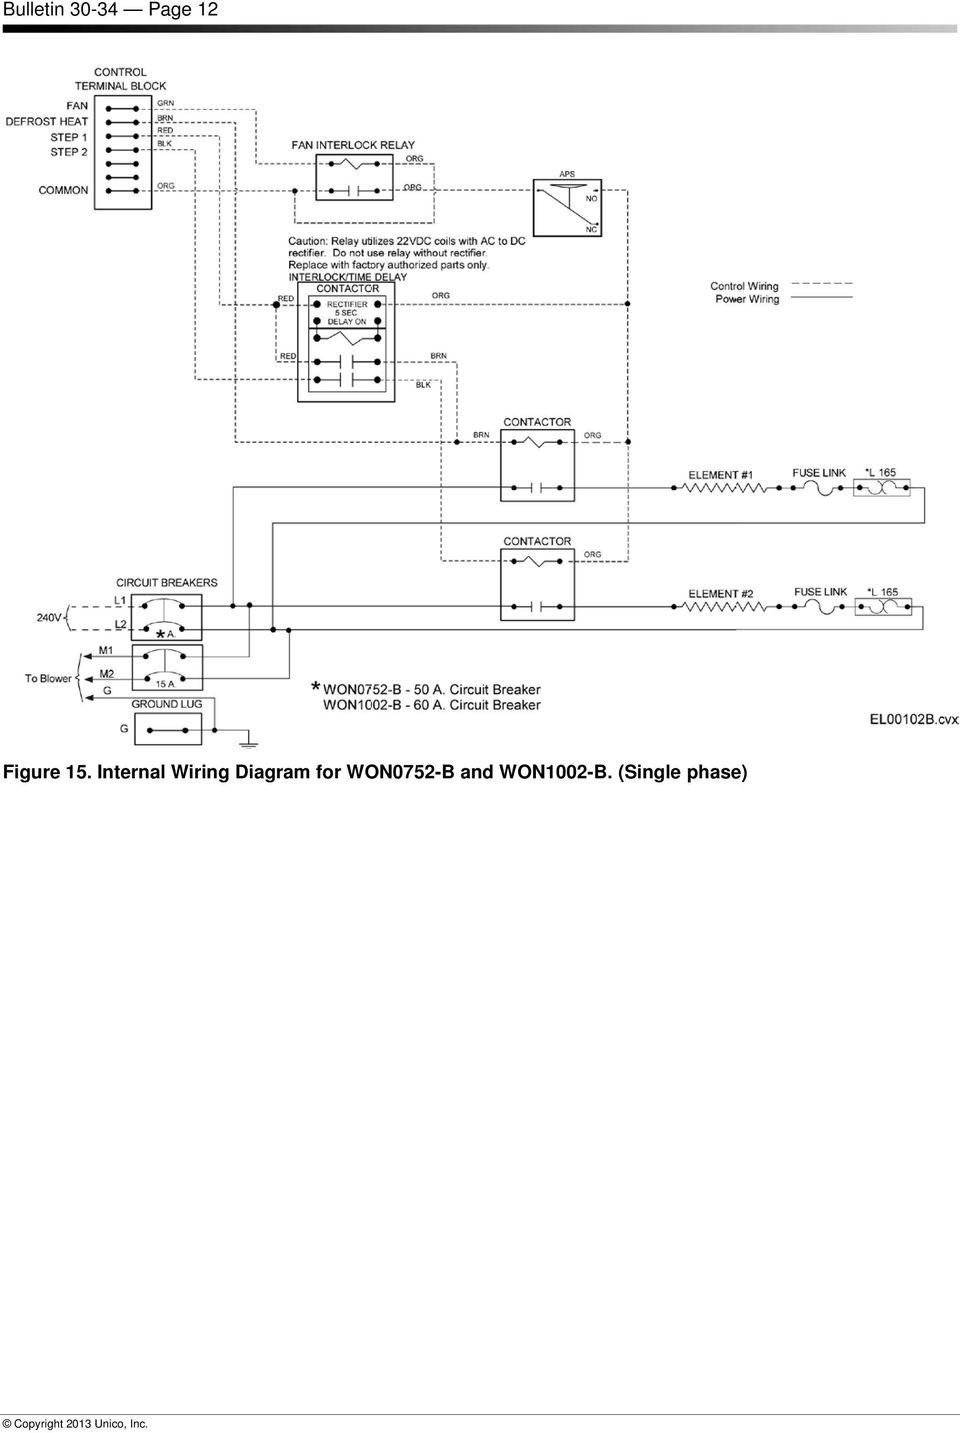 Won0502 B Installation Instructions For Electric Furnaces Bulletin Unico System Wiring Diagram Internal